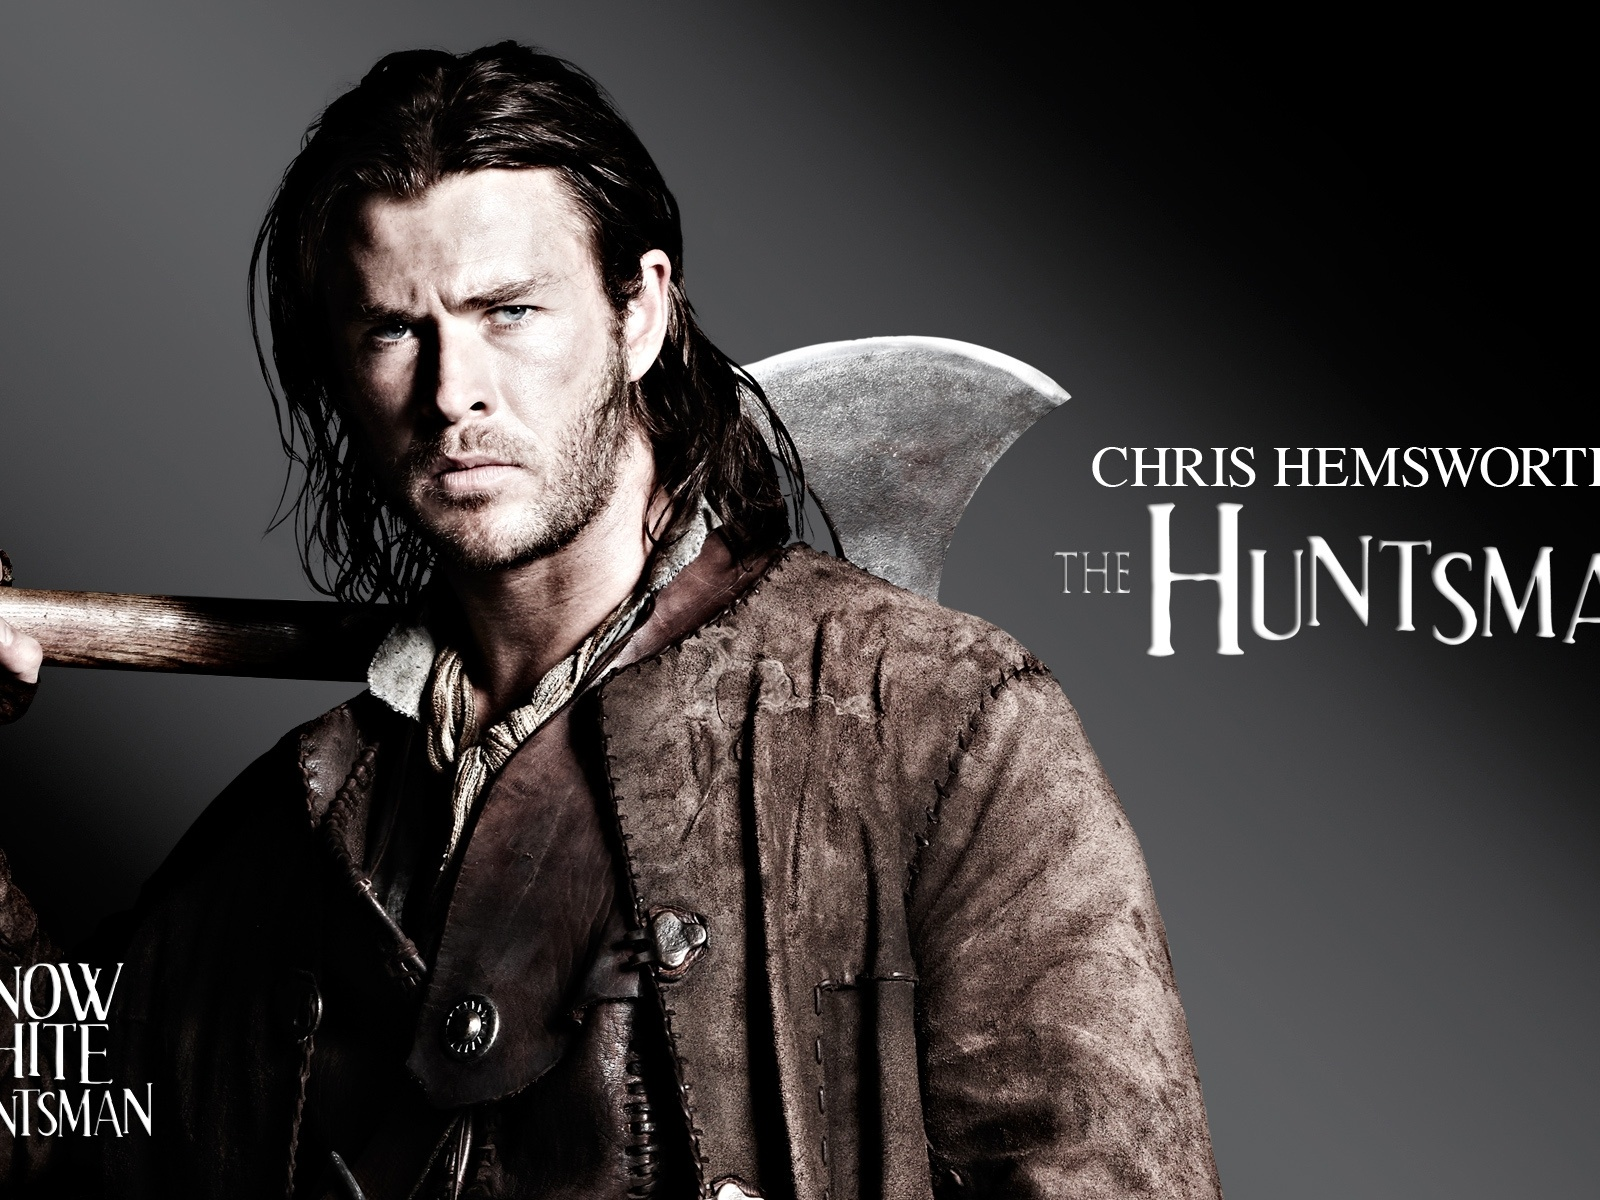 http://4.bp.blogspot.com/-D5gXuefR2BA/UUrAycnjPBI/AAAAAAAAEJs/ipguz6EGsk0/s1600/Chris+Hemsworth+hd+Wallpapers+2013_1.jpg